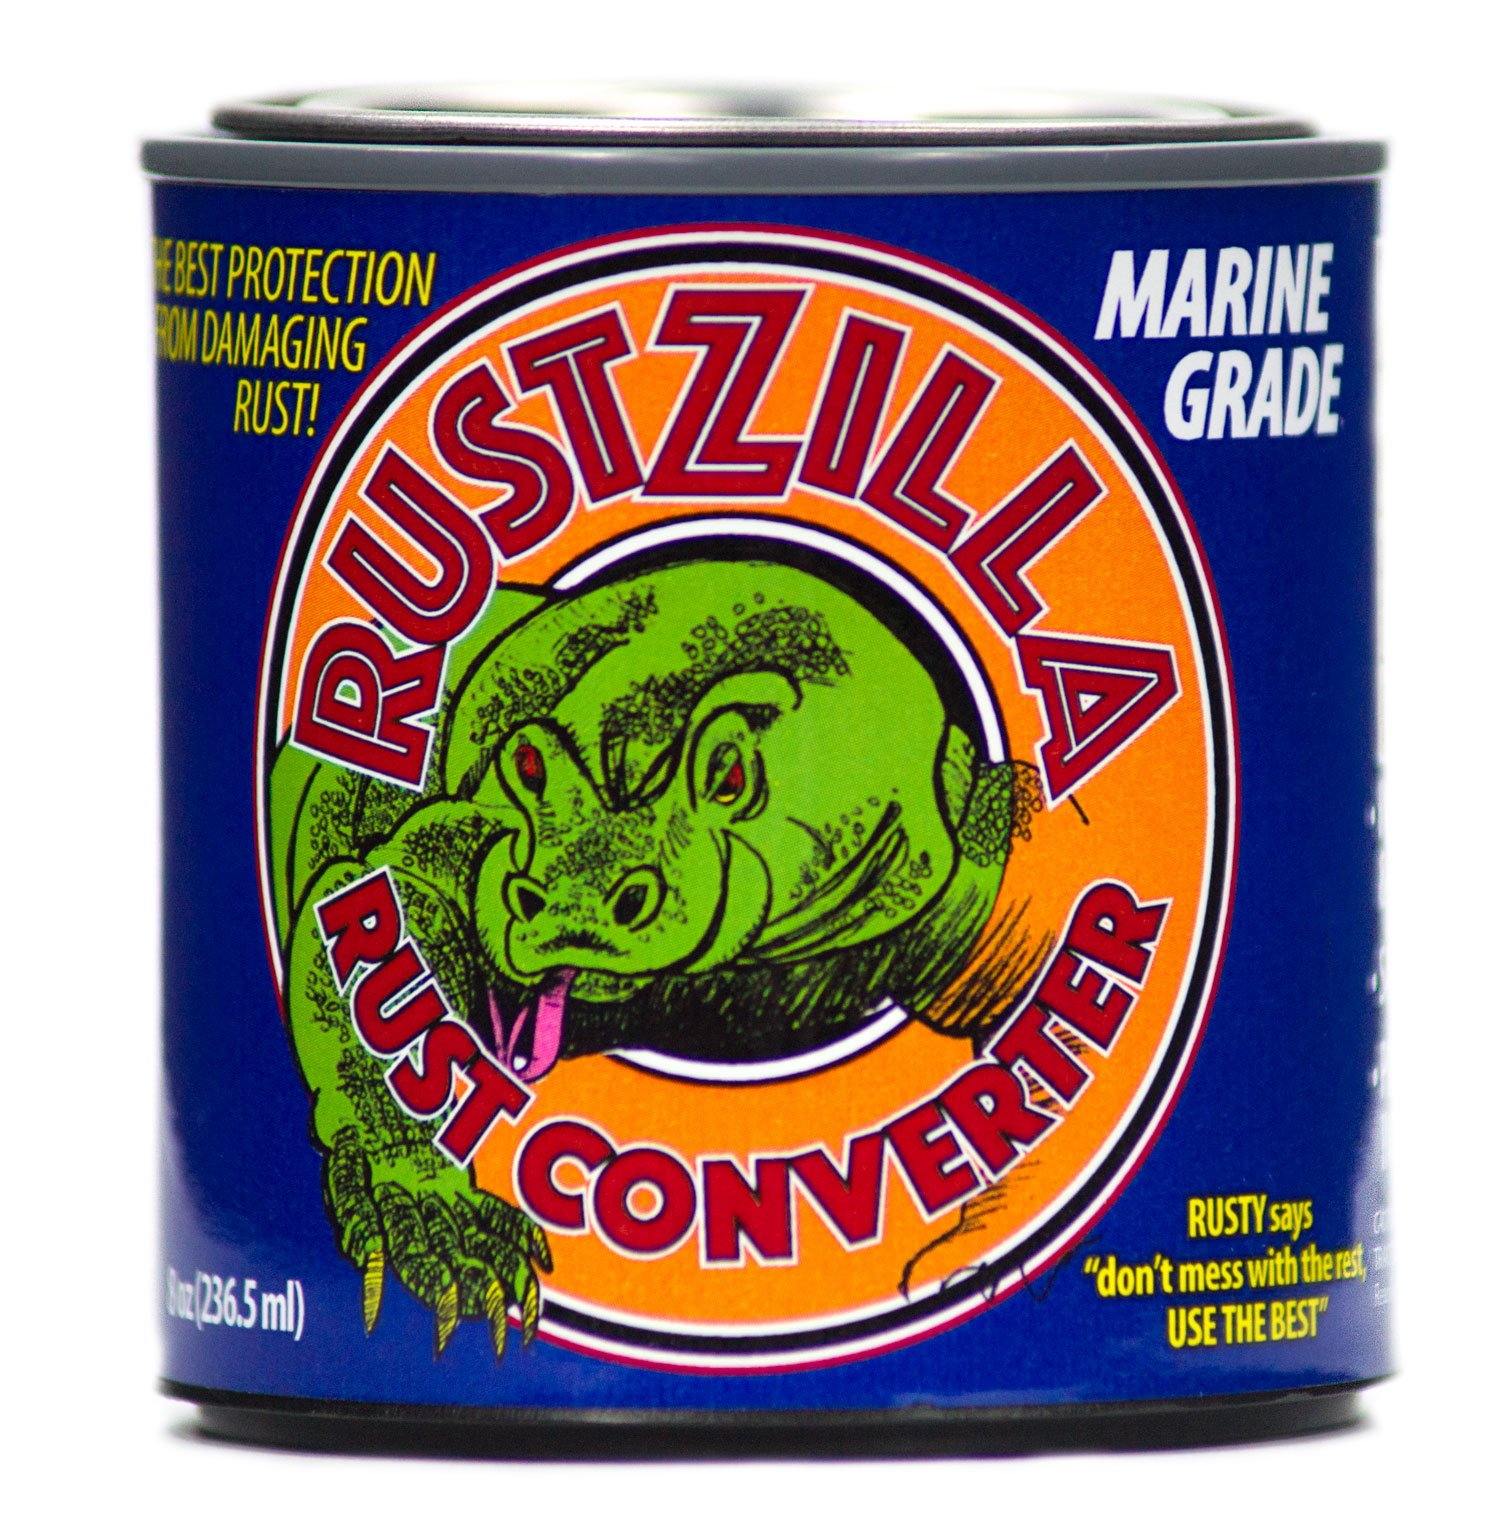 RUSTZILLA 856557004189 Marine Grade Rust Converter and Remover, Professional Strength for All Metals Including Stainless Steel, Steel, Cast-Iron, Quart, 32 oz.